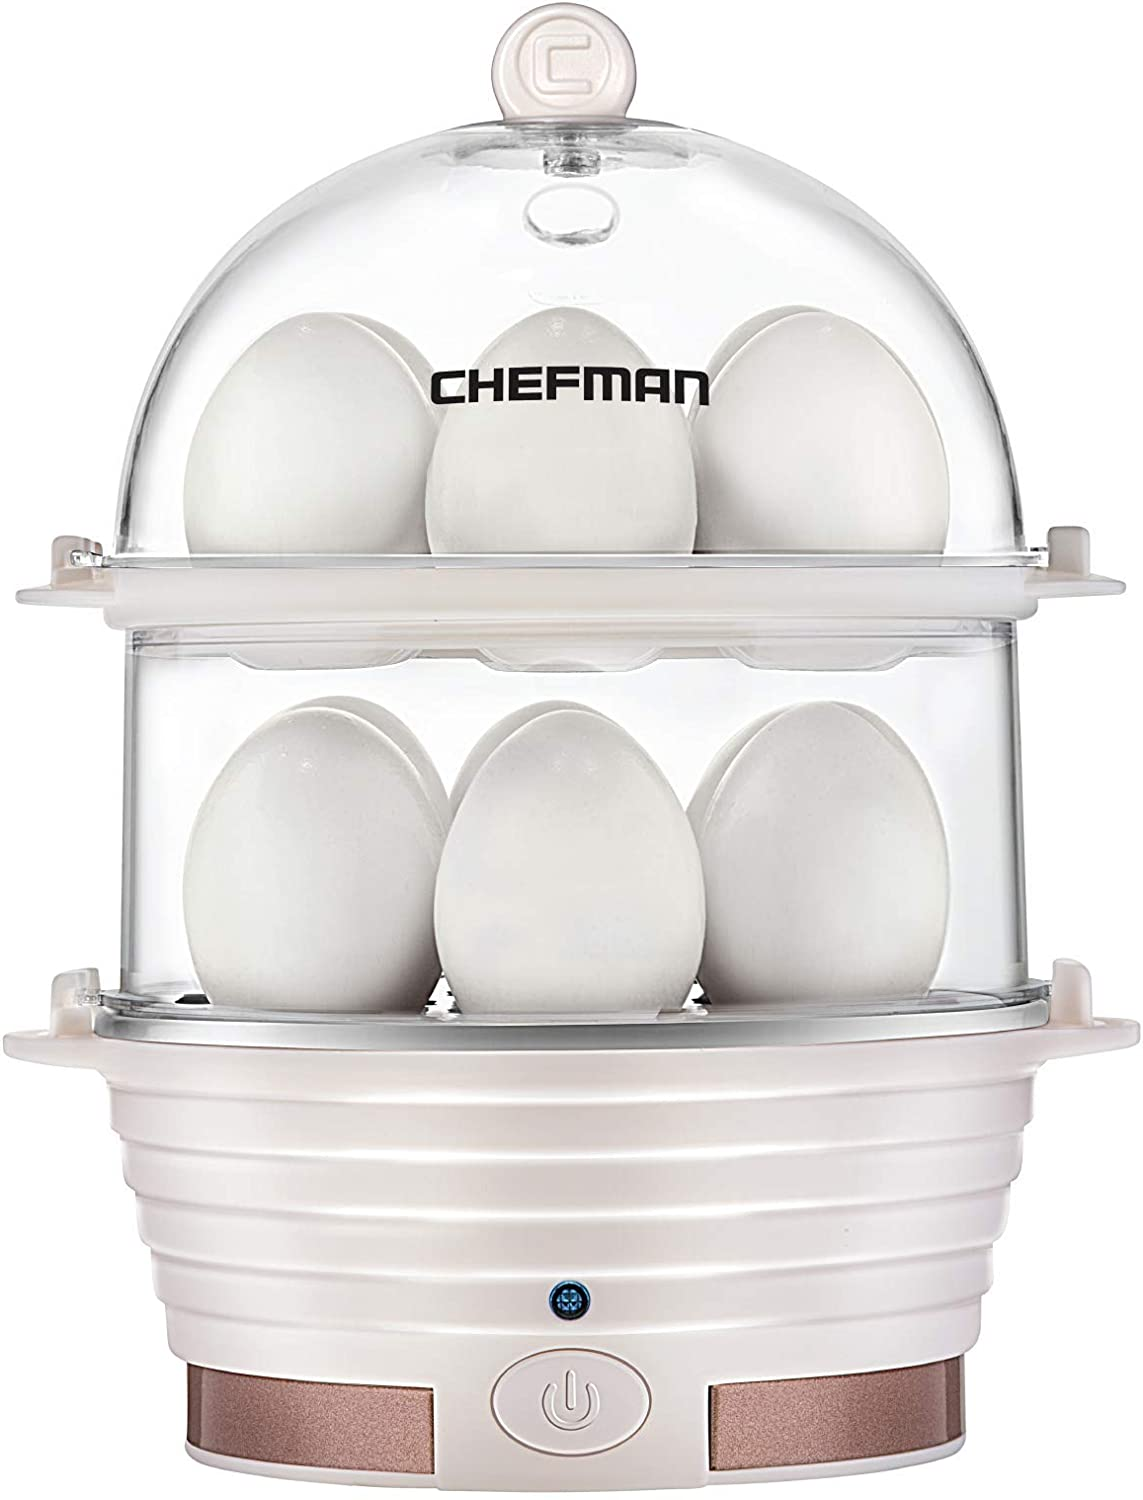 Chefman Electric Egg Cooker Boiler, Rapid Egg-Maker & Poacher, Food & Vegetable Steamer, Quickly Makes 12 Eggs, Hard or Soft Boiled, Poaching and Omelet Trays Included, Ready Signal, BPA-Free, Ivory (Renewed)